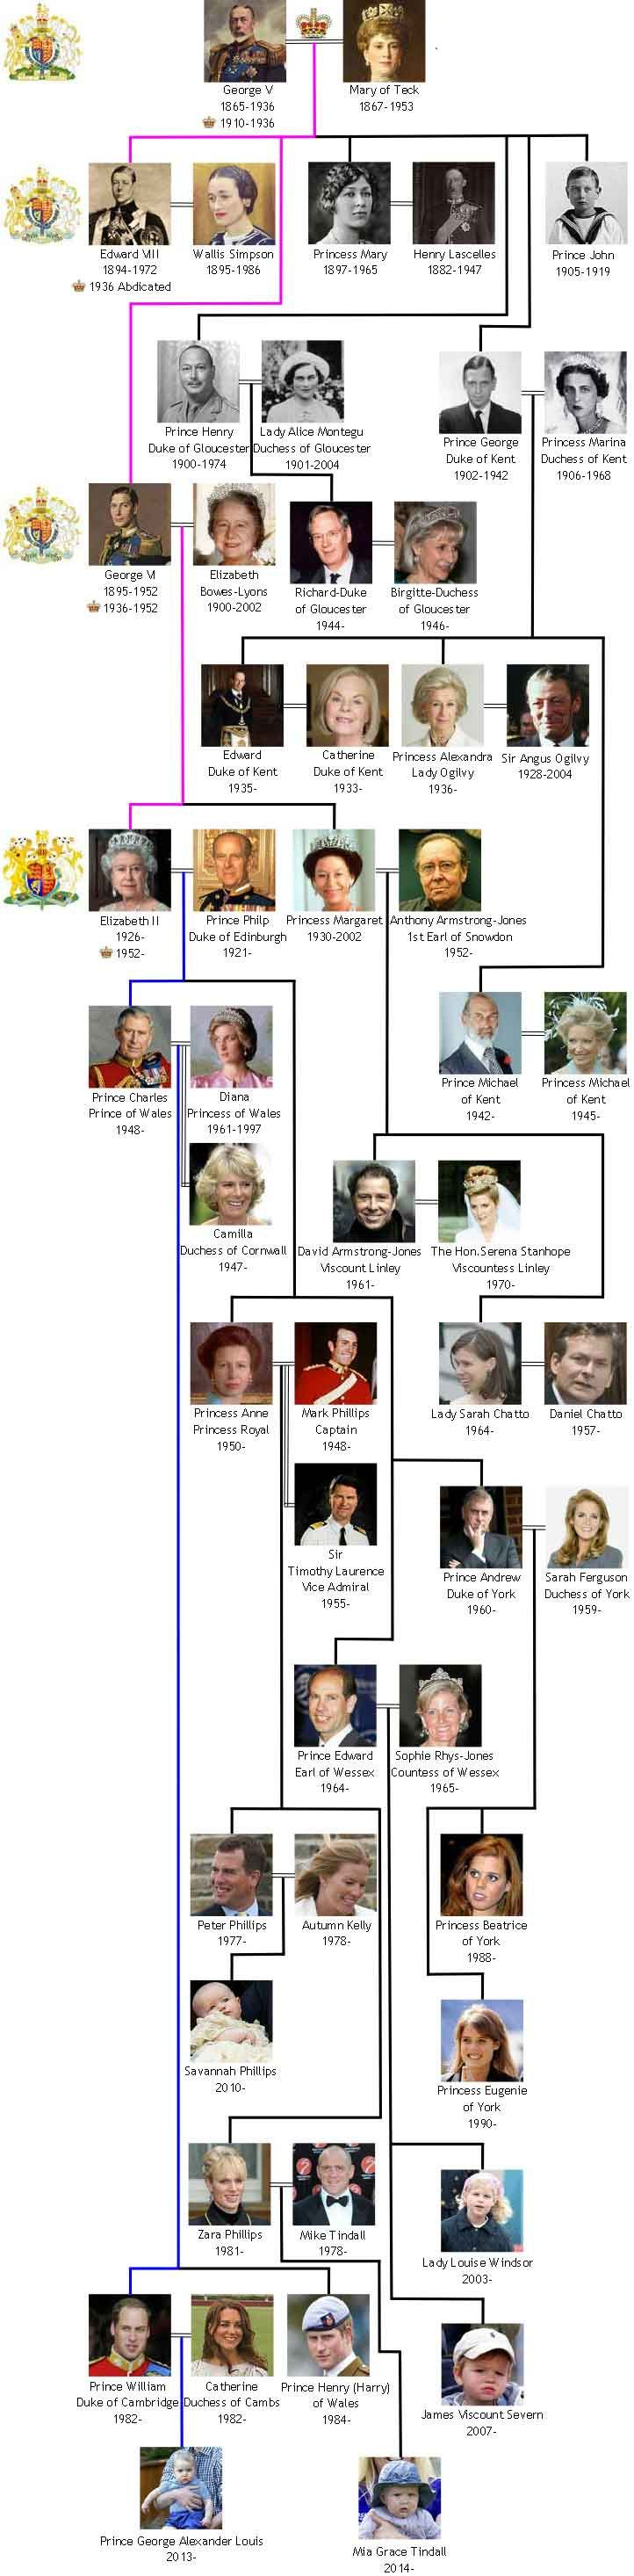 House of Windsor British Royal Family Tree